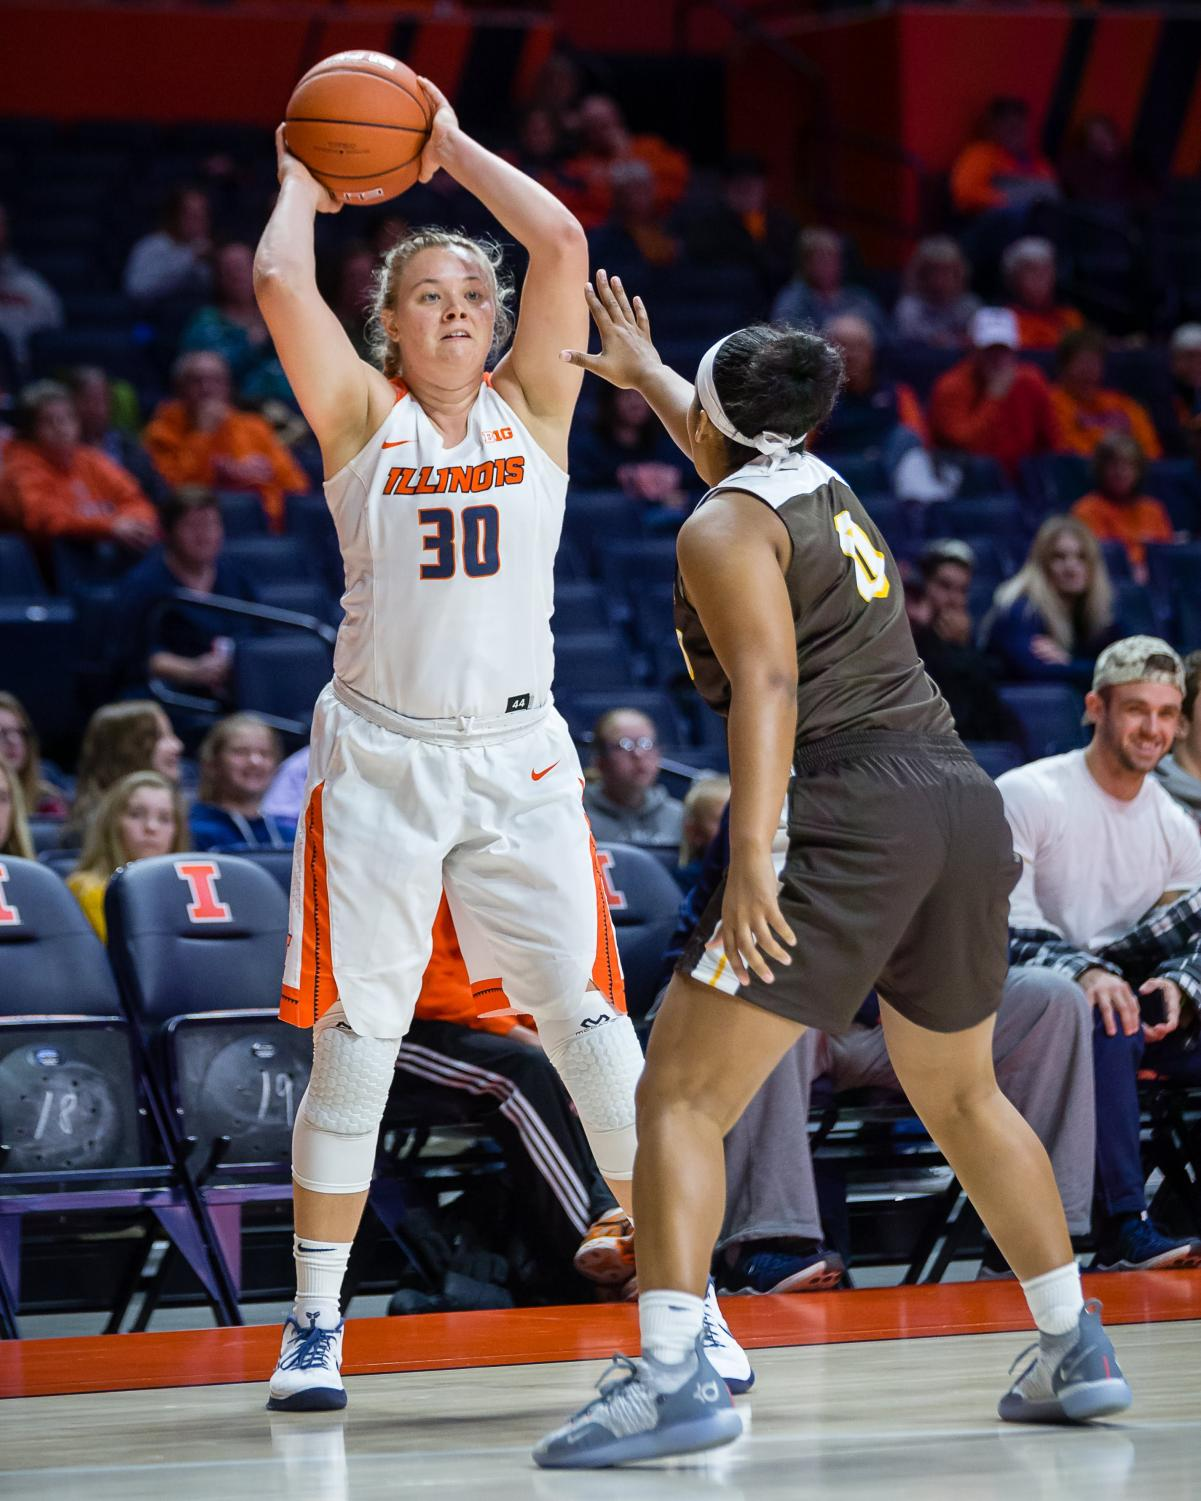 Illinois guard Courtney Joens looks to pass the ball during the game against Valparaiso at State Farm Center on Nov. 14. The Illini won 73-54.